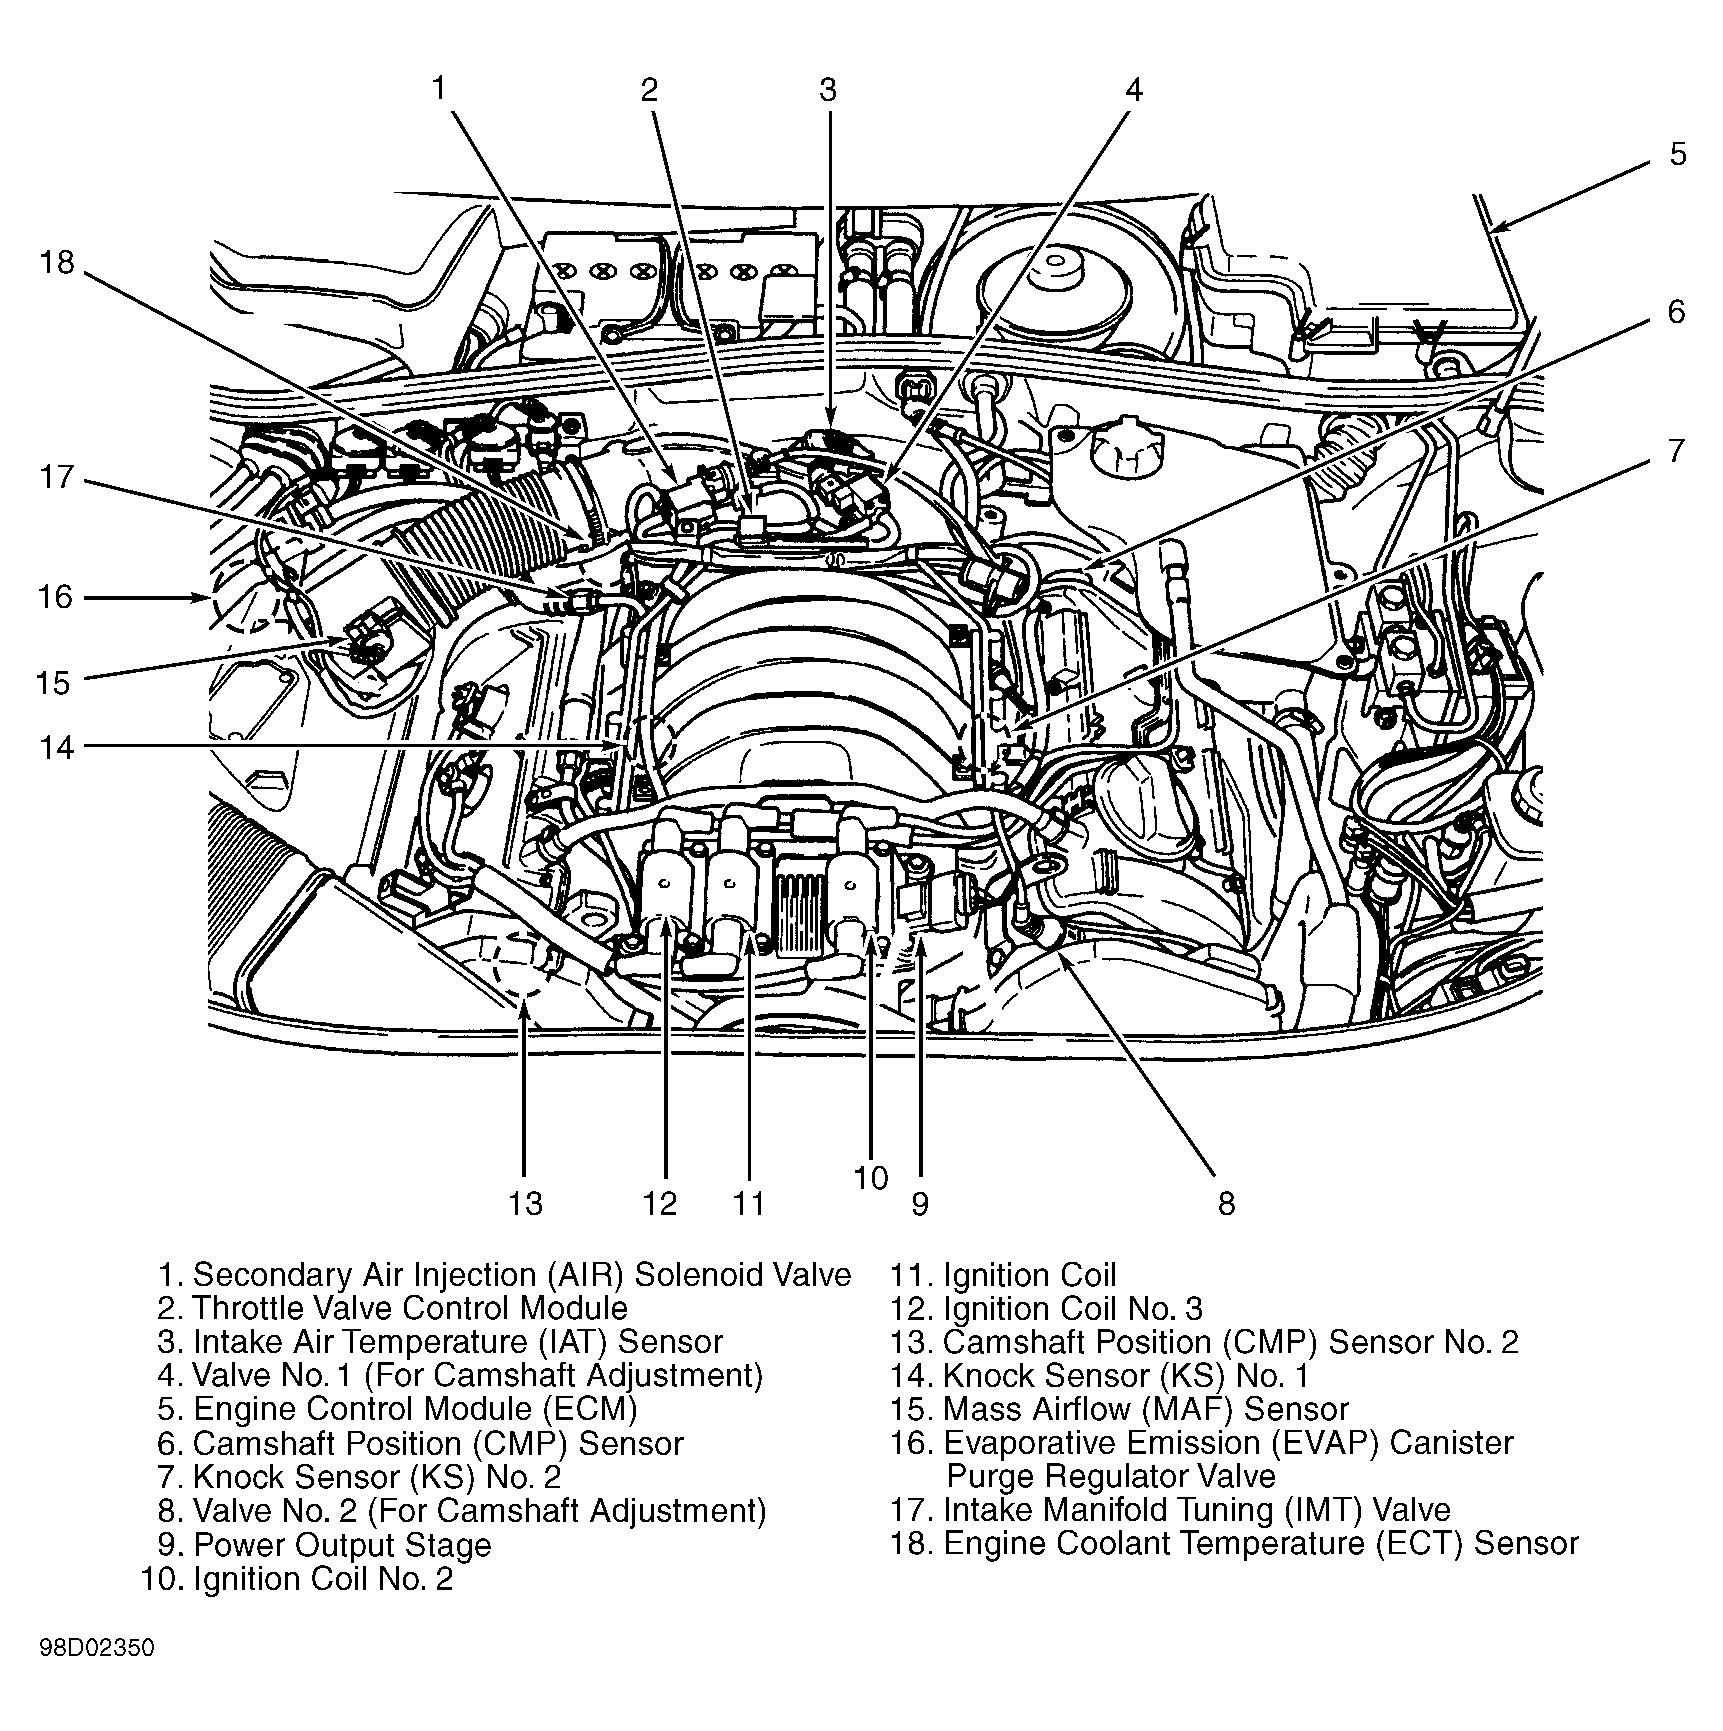 Wiring Diagram Database: 2006 Ford Fusion Belt Diagram